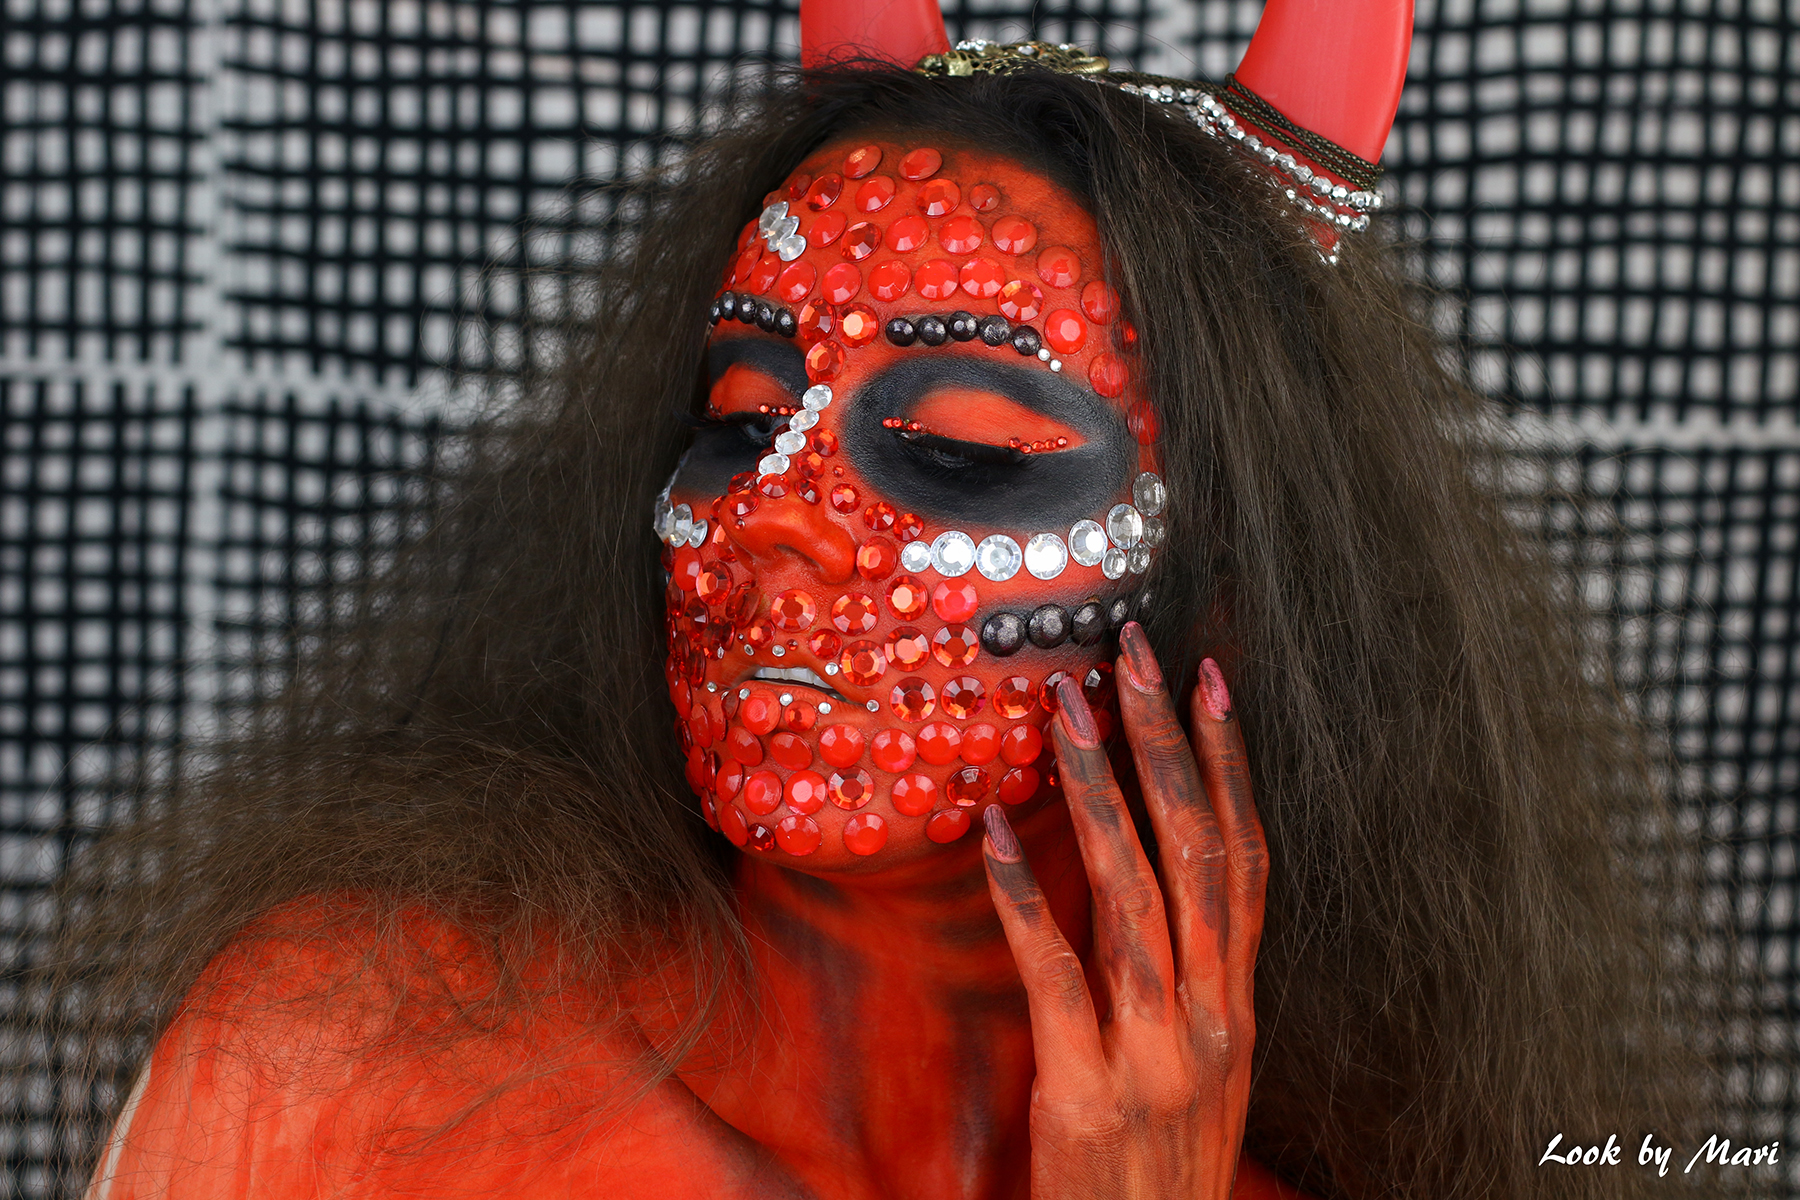 2 devil evil makeup red tutorial inspo ideas inspiration blog youtube video red glittery